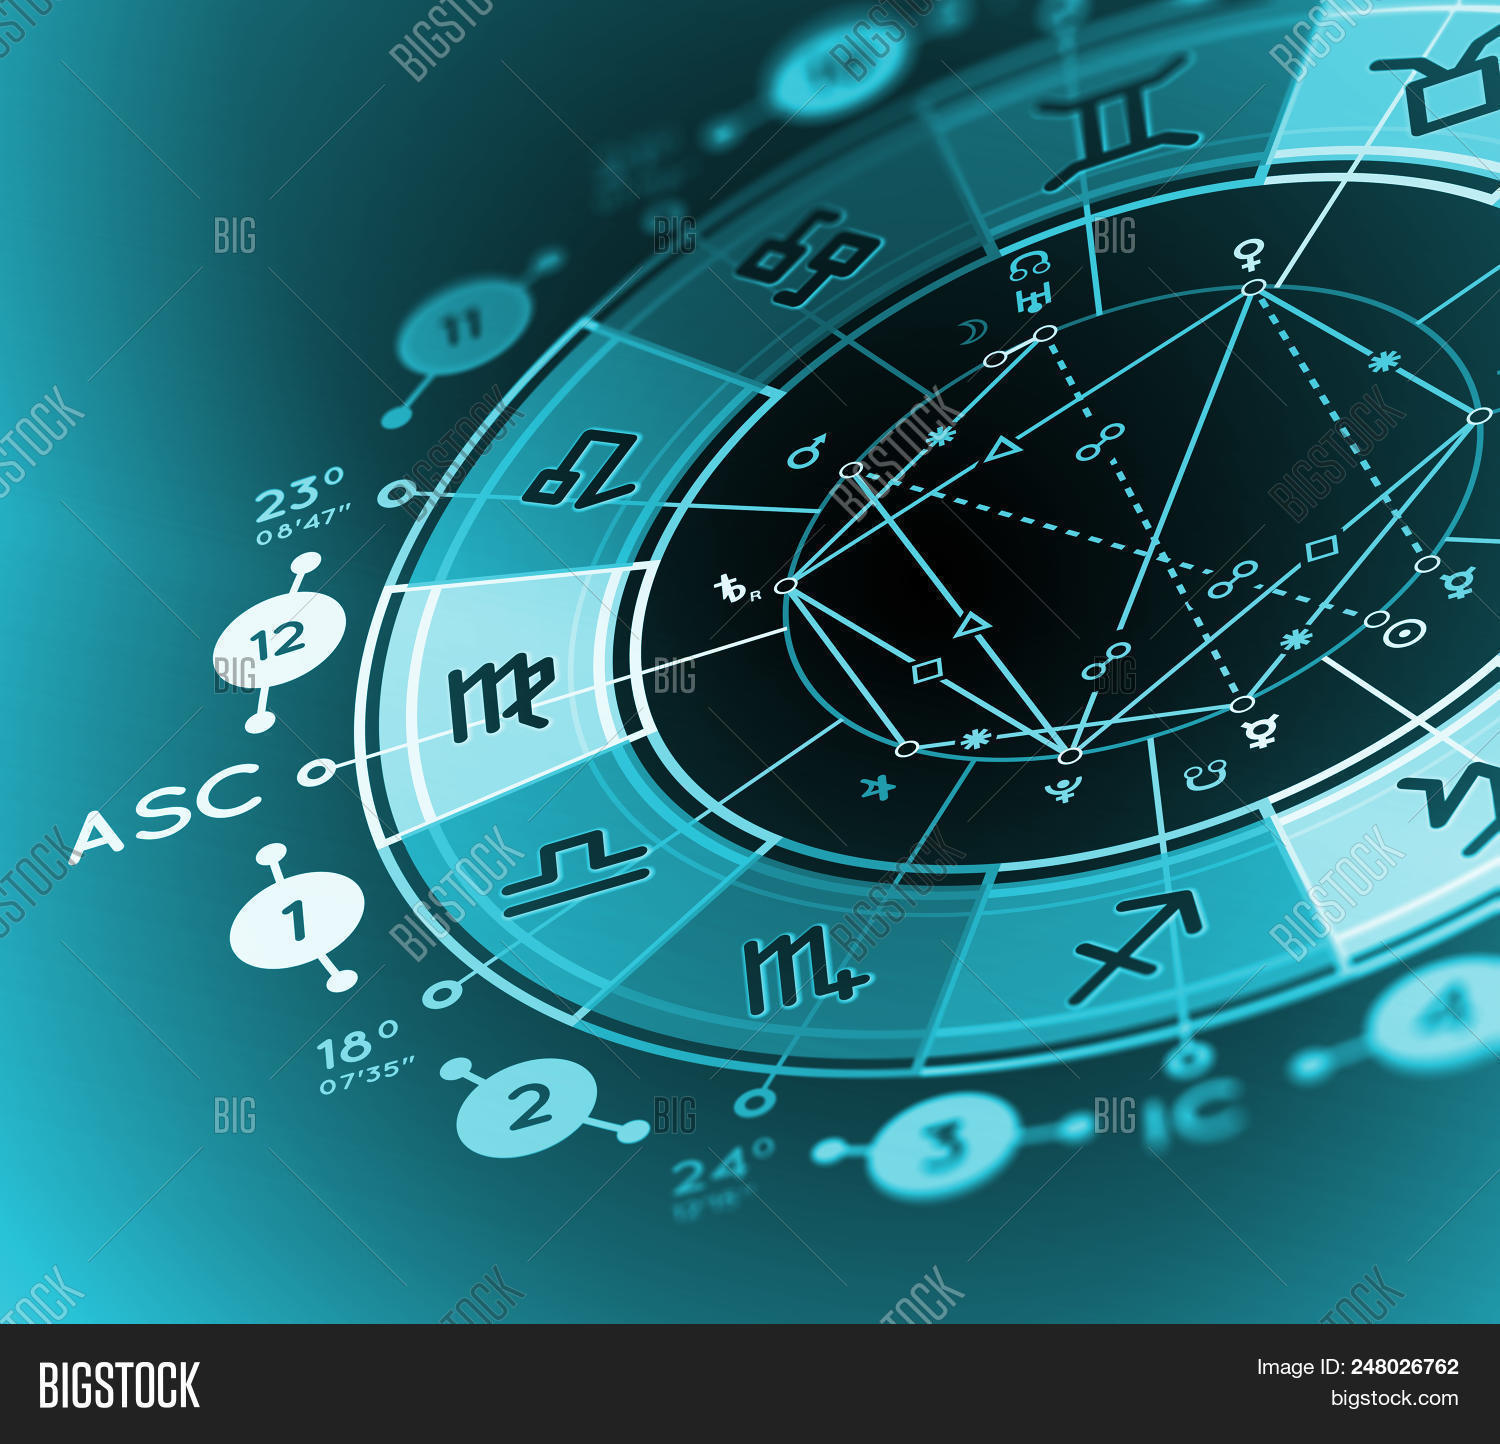 Astrology Background. Image & Photo Free Trial   Bigstock